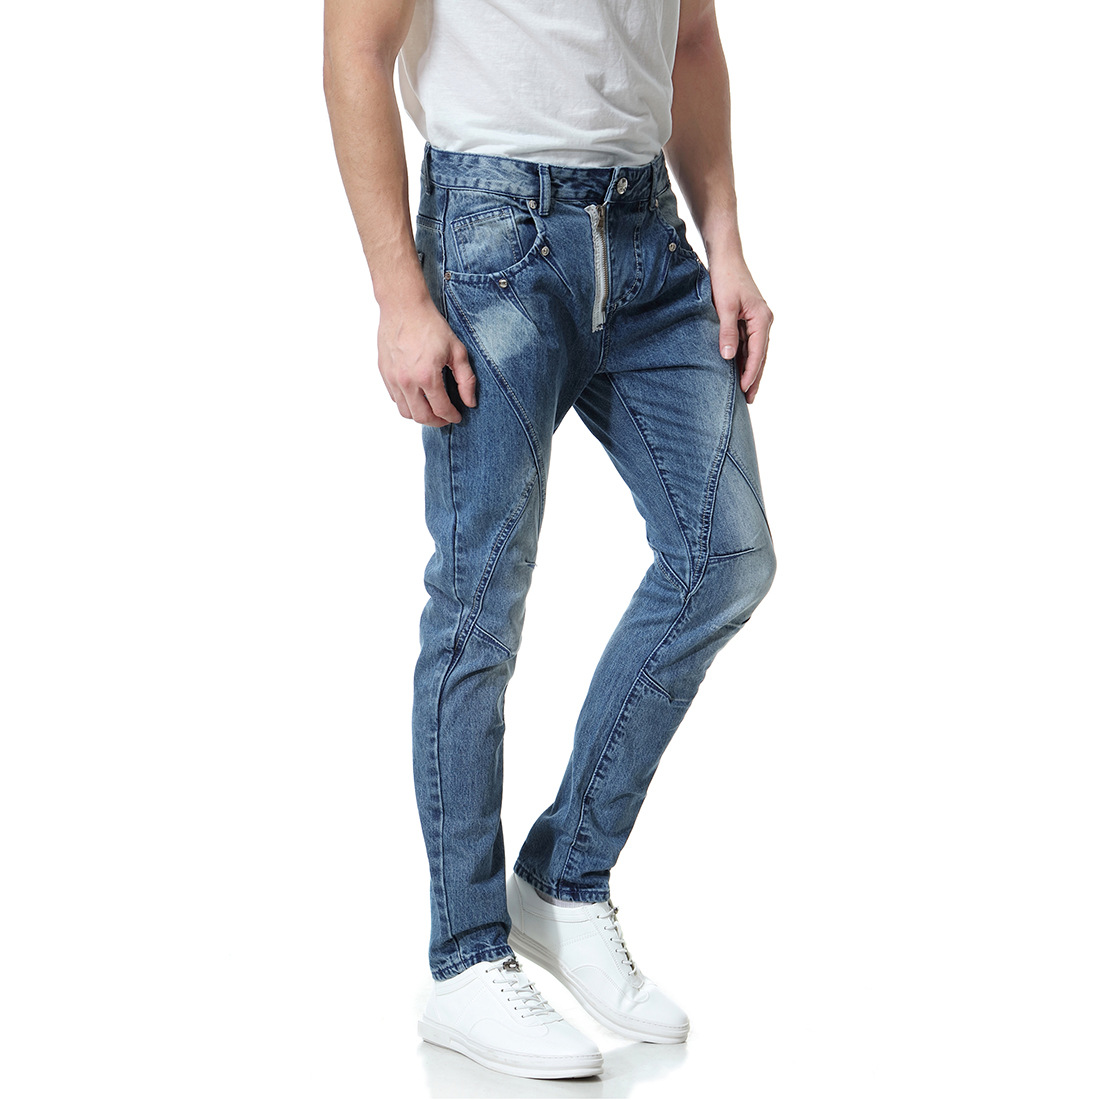 2019 New Large Size Men's Jeans Washed White Denim Trousers Diagonal Zip Personality Pants Xy1003